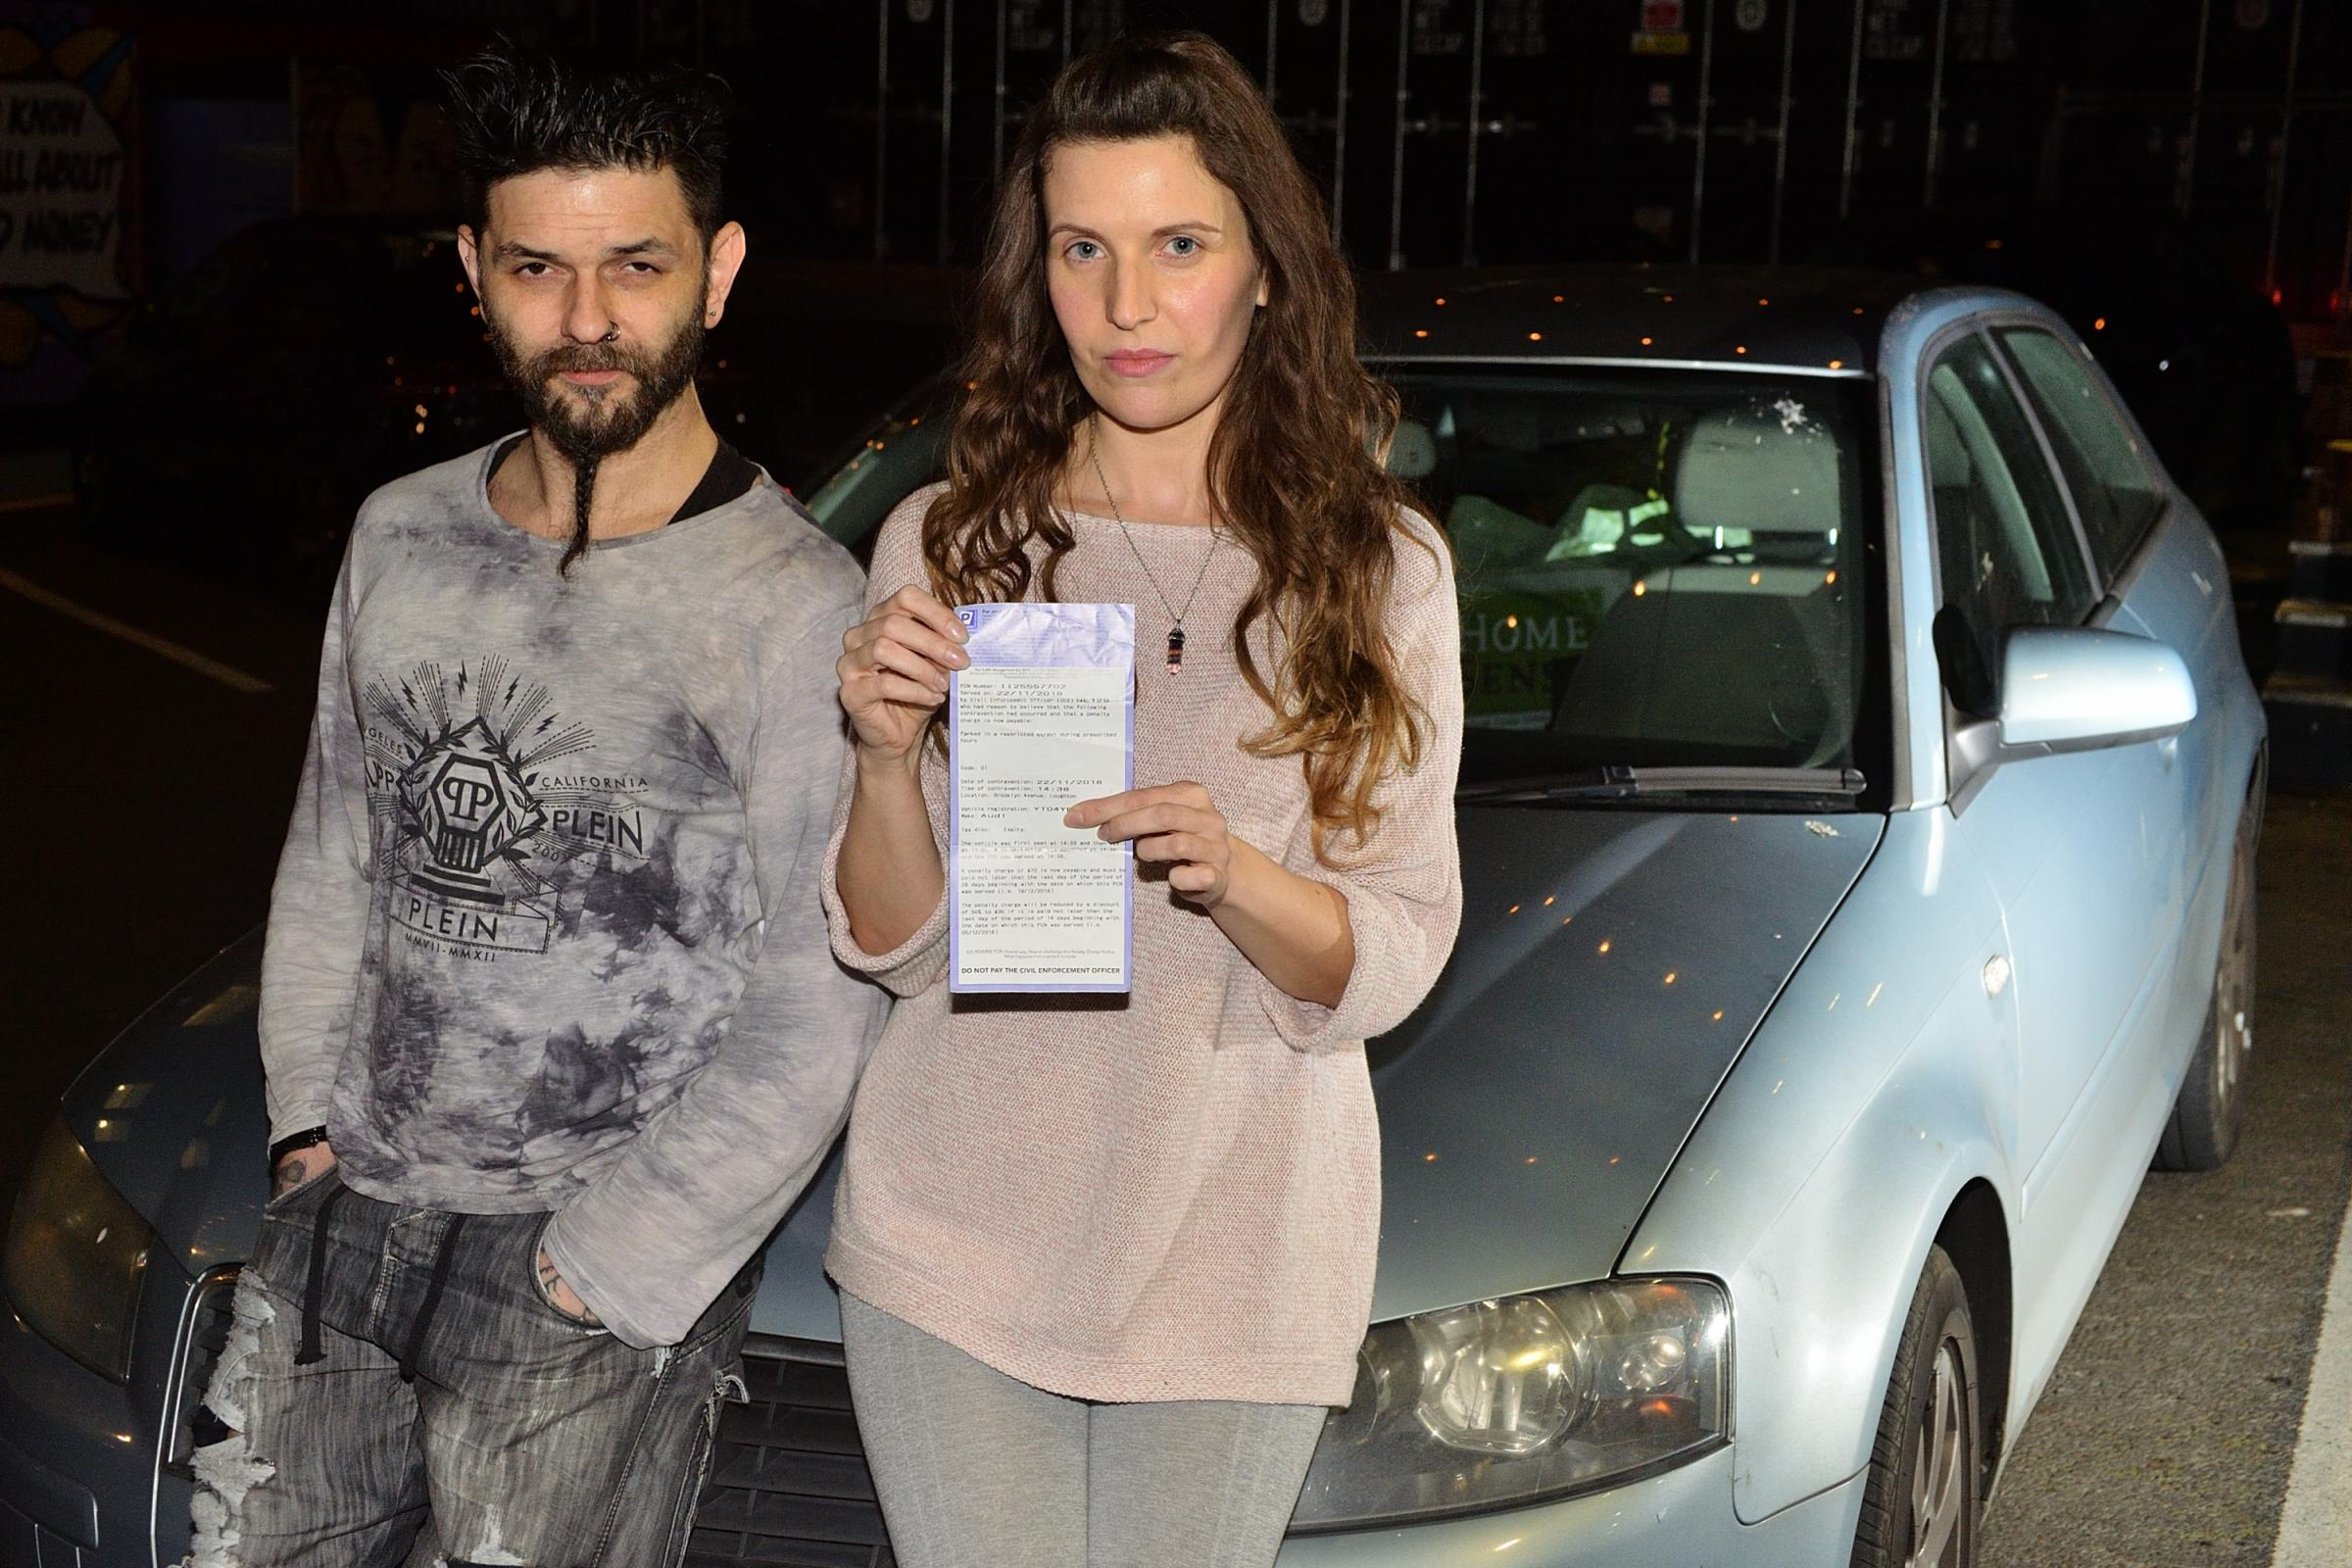 Leah Freet and Erx Yaman were issued a parking ticket after helping an elderly man who had collapsed at the roadside. Loughton, Essex.  (8-12-2019) EL92389_05